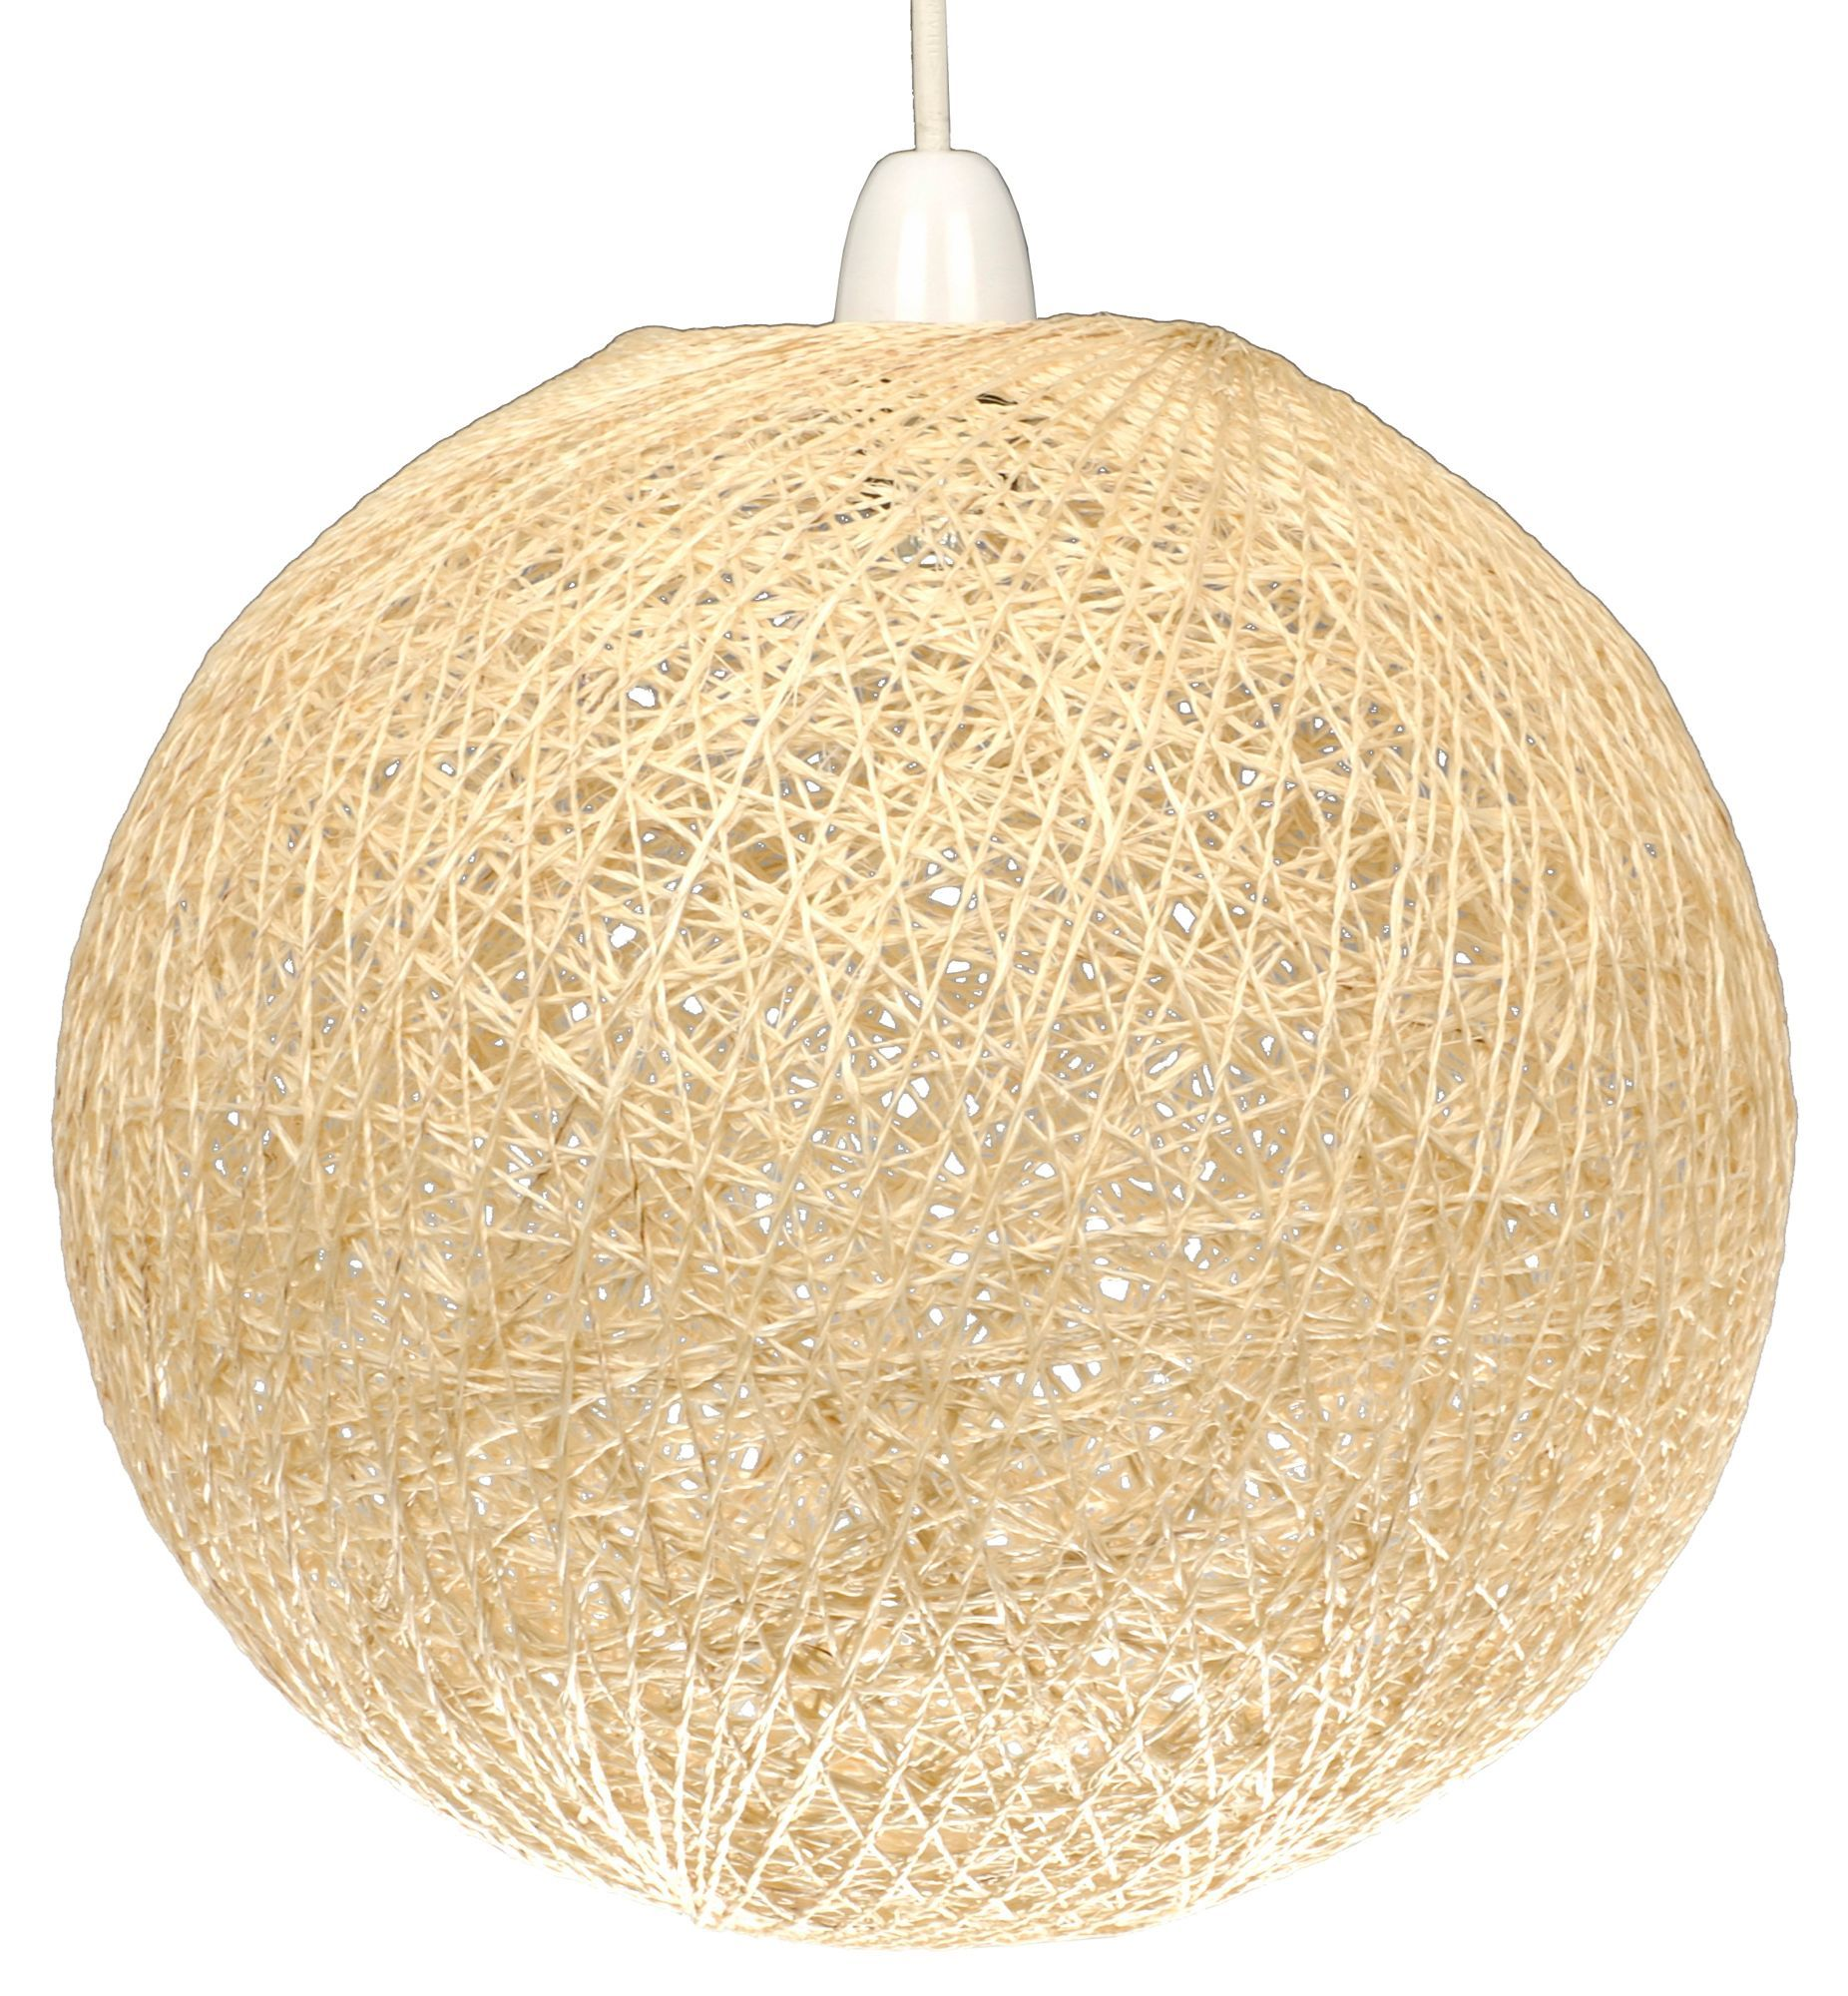 Abaca beige twine ball pendant light shade d280mm pendant lights by bq abaca beige twine ball light shade dia280mm departments aloadofball Images